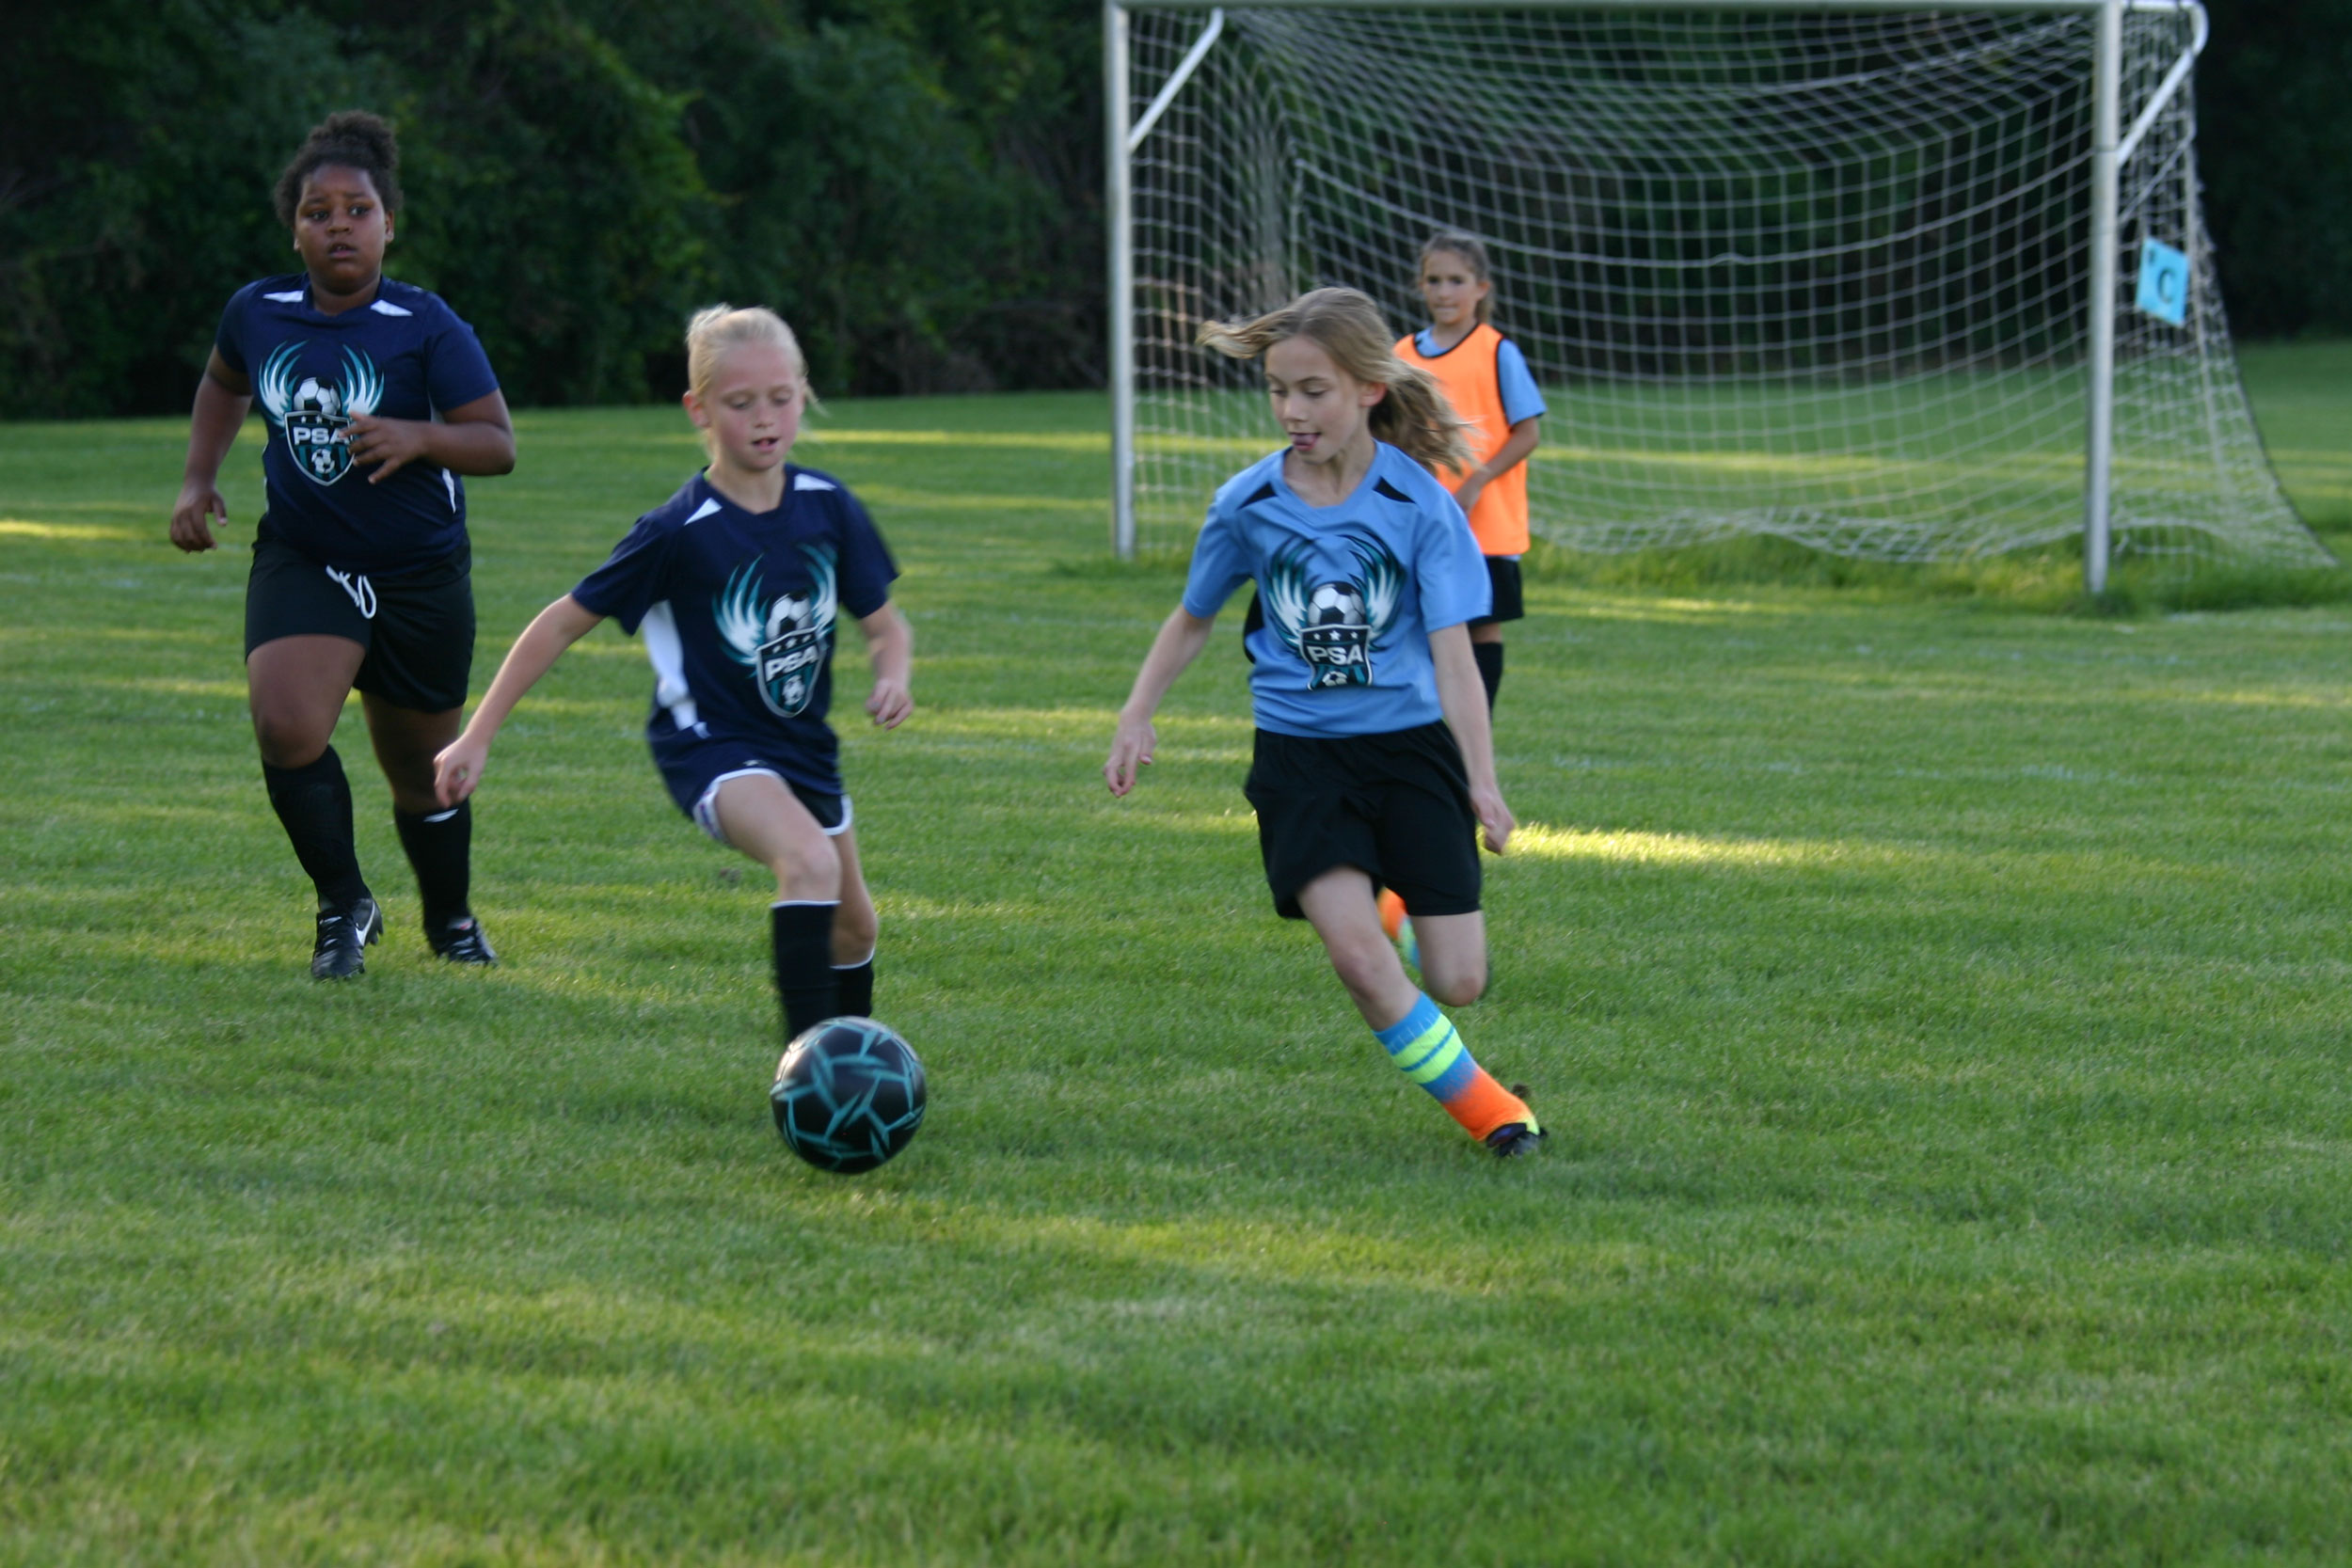 Nora's soccer skills is a Wheely Inspiring Story.